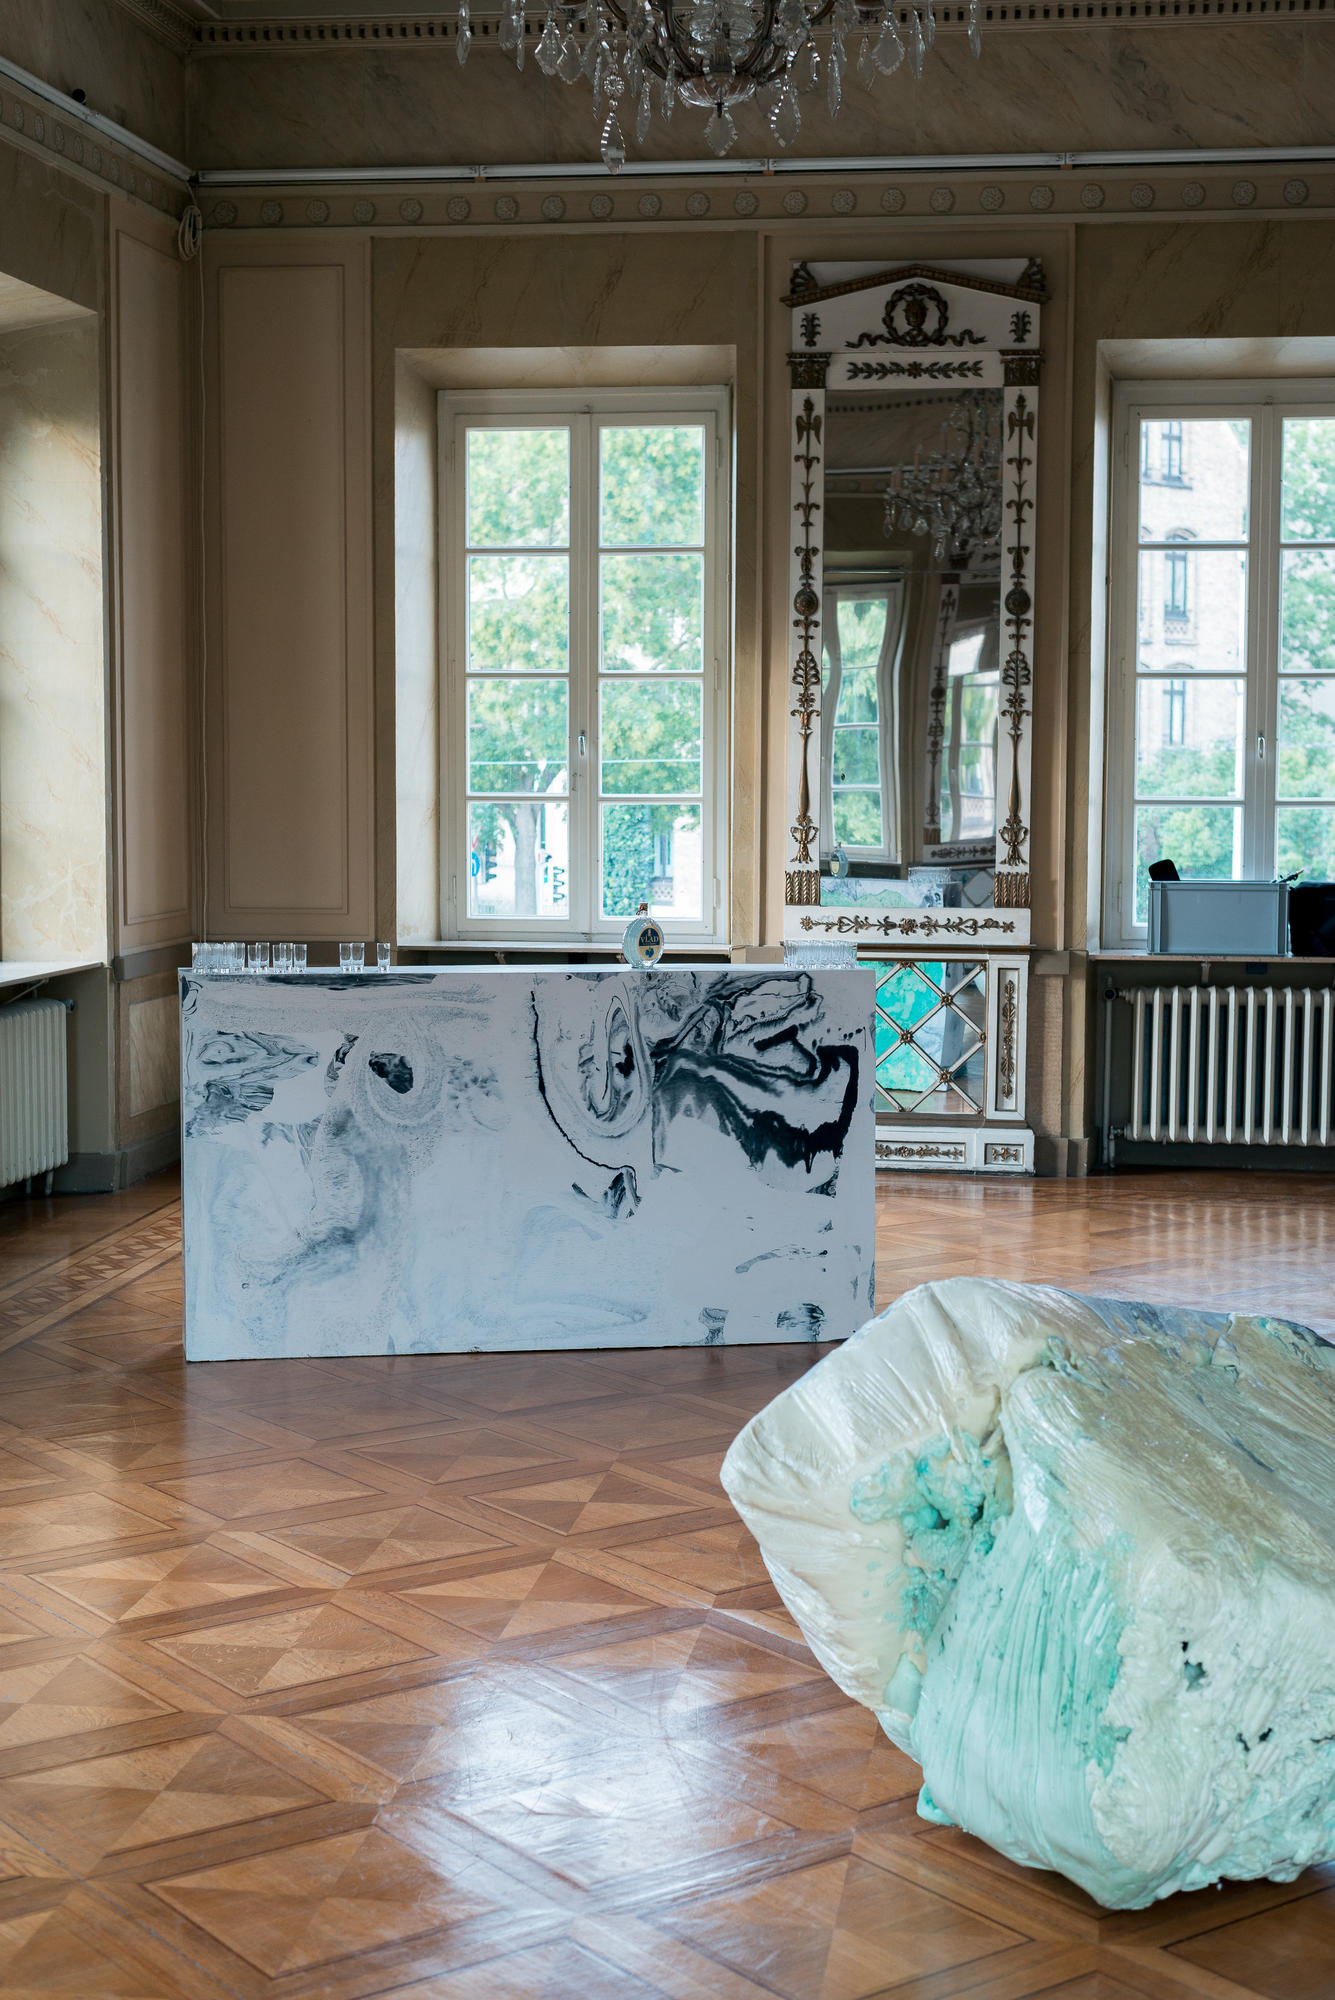 Open House at Kunstverein Braunschweig_Peles Empire 2